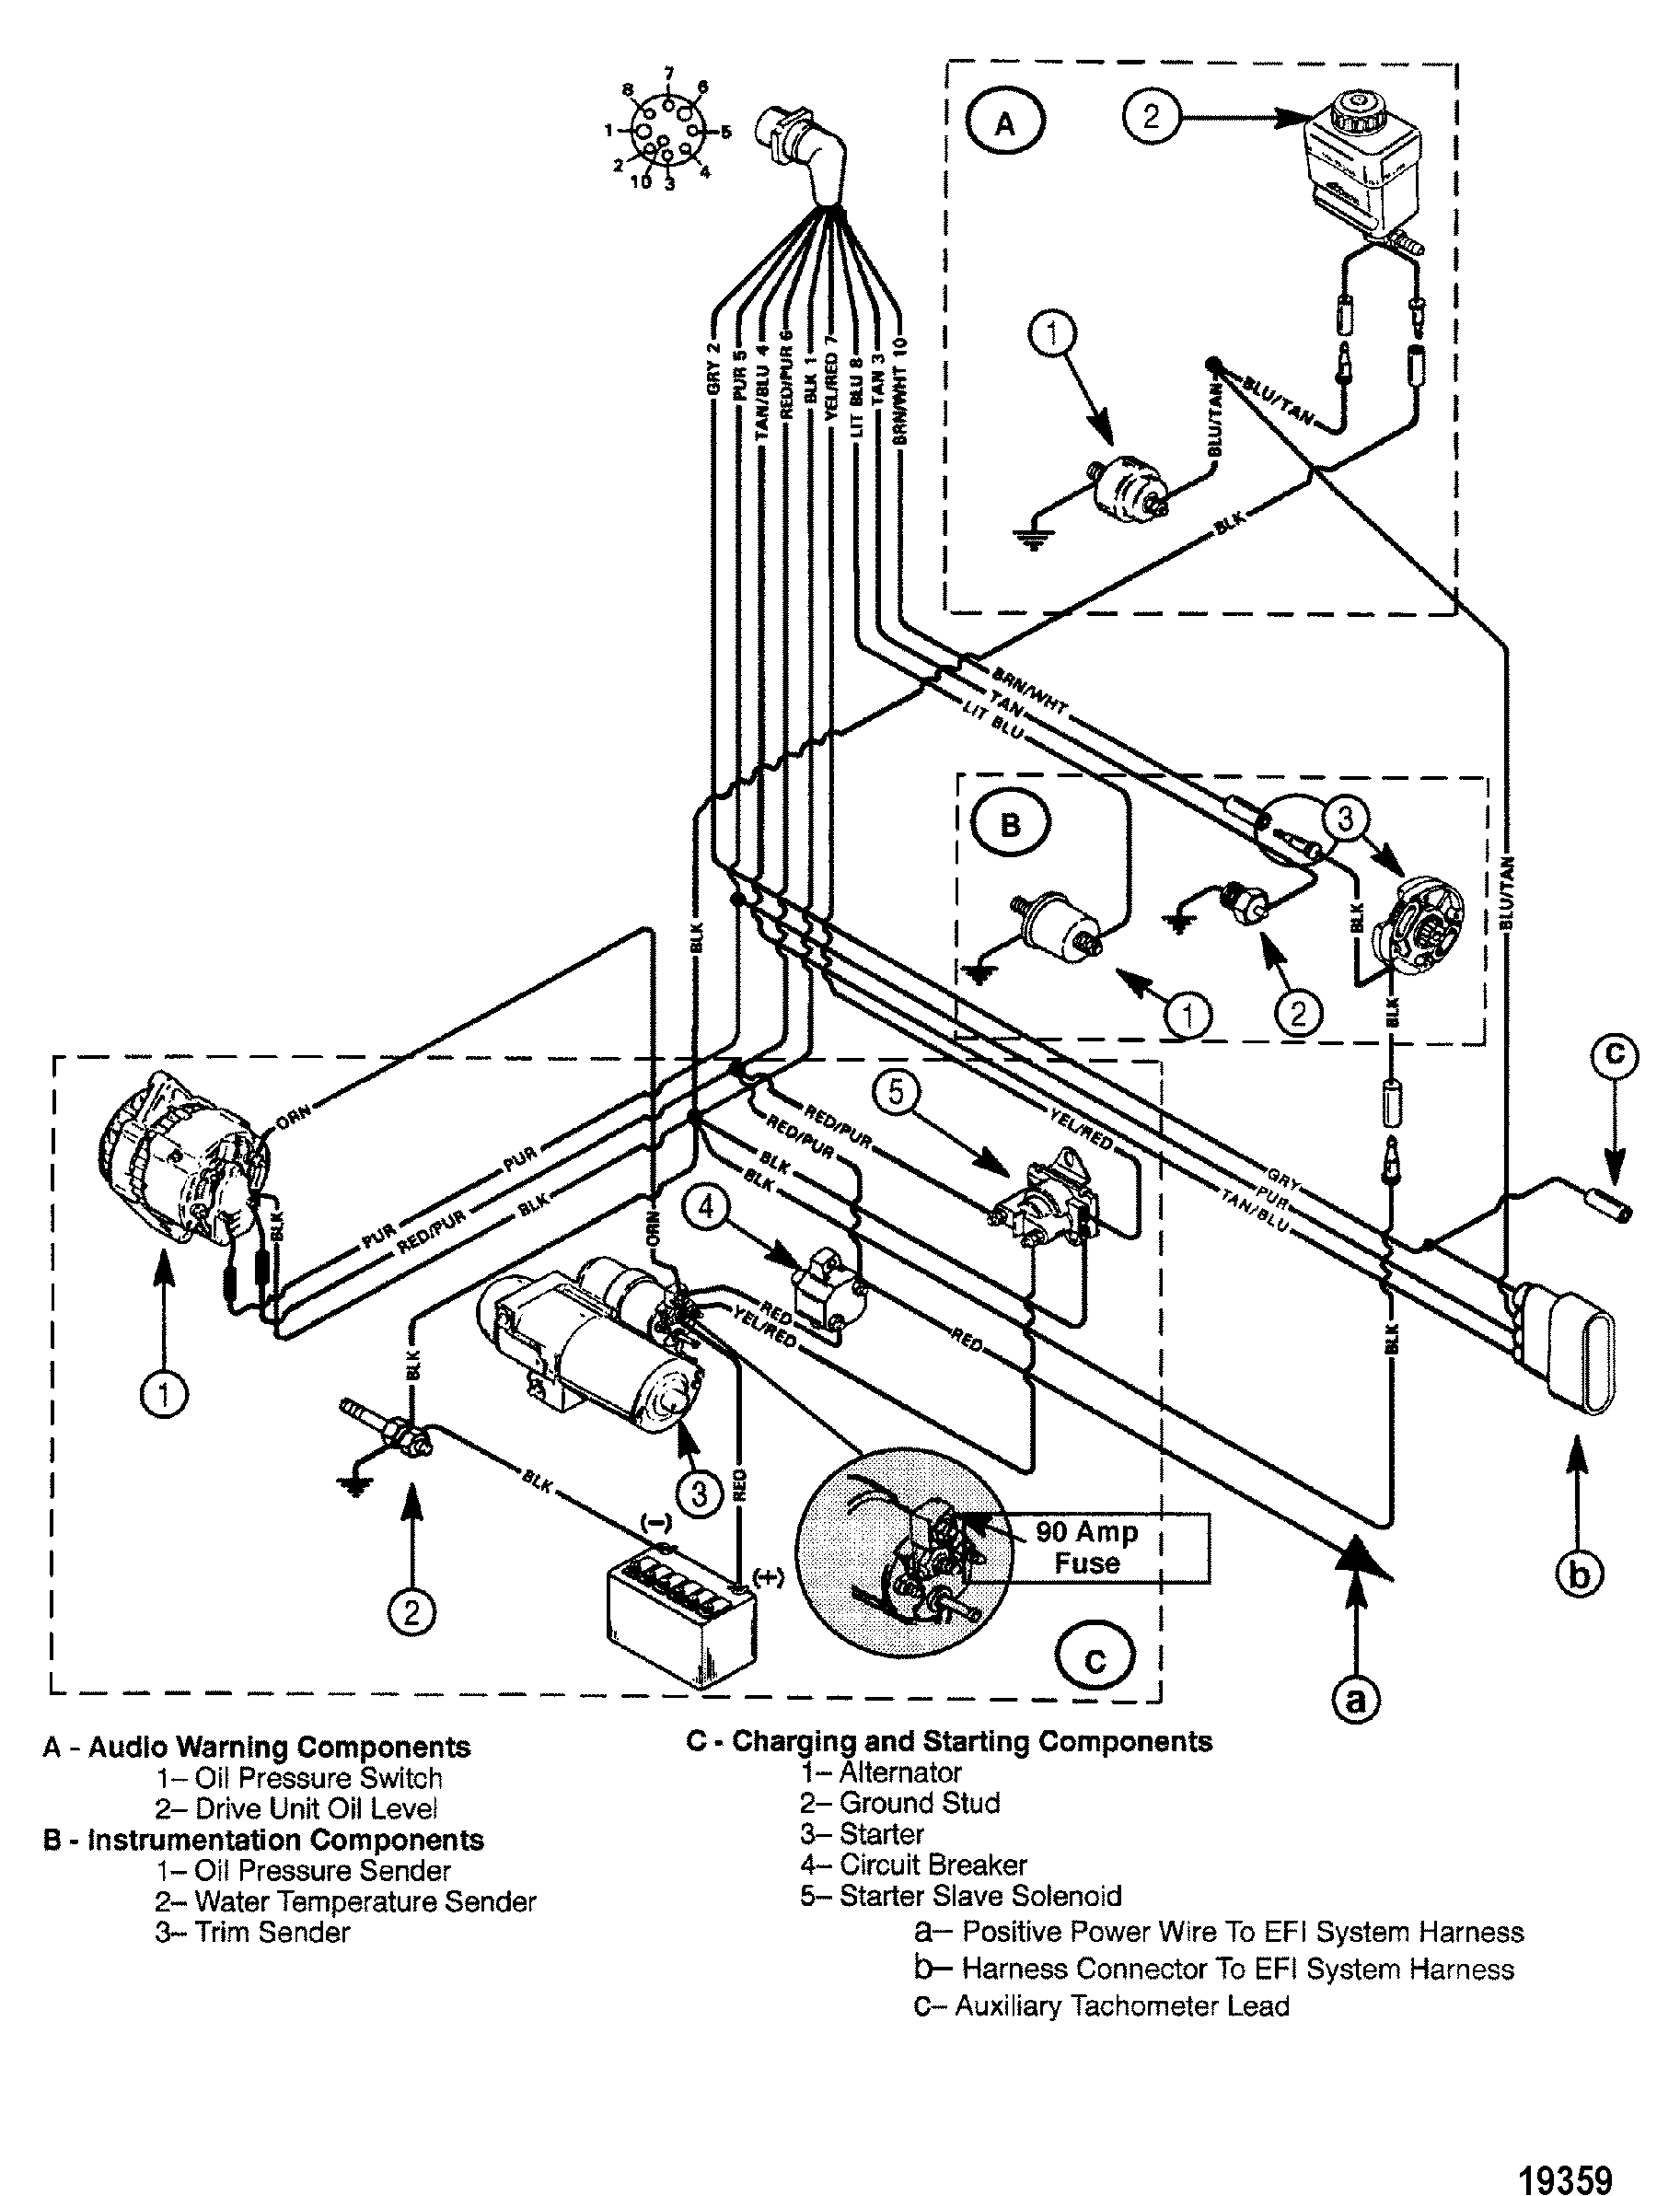 350 Marine Engine Starter Wiring Diagram